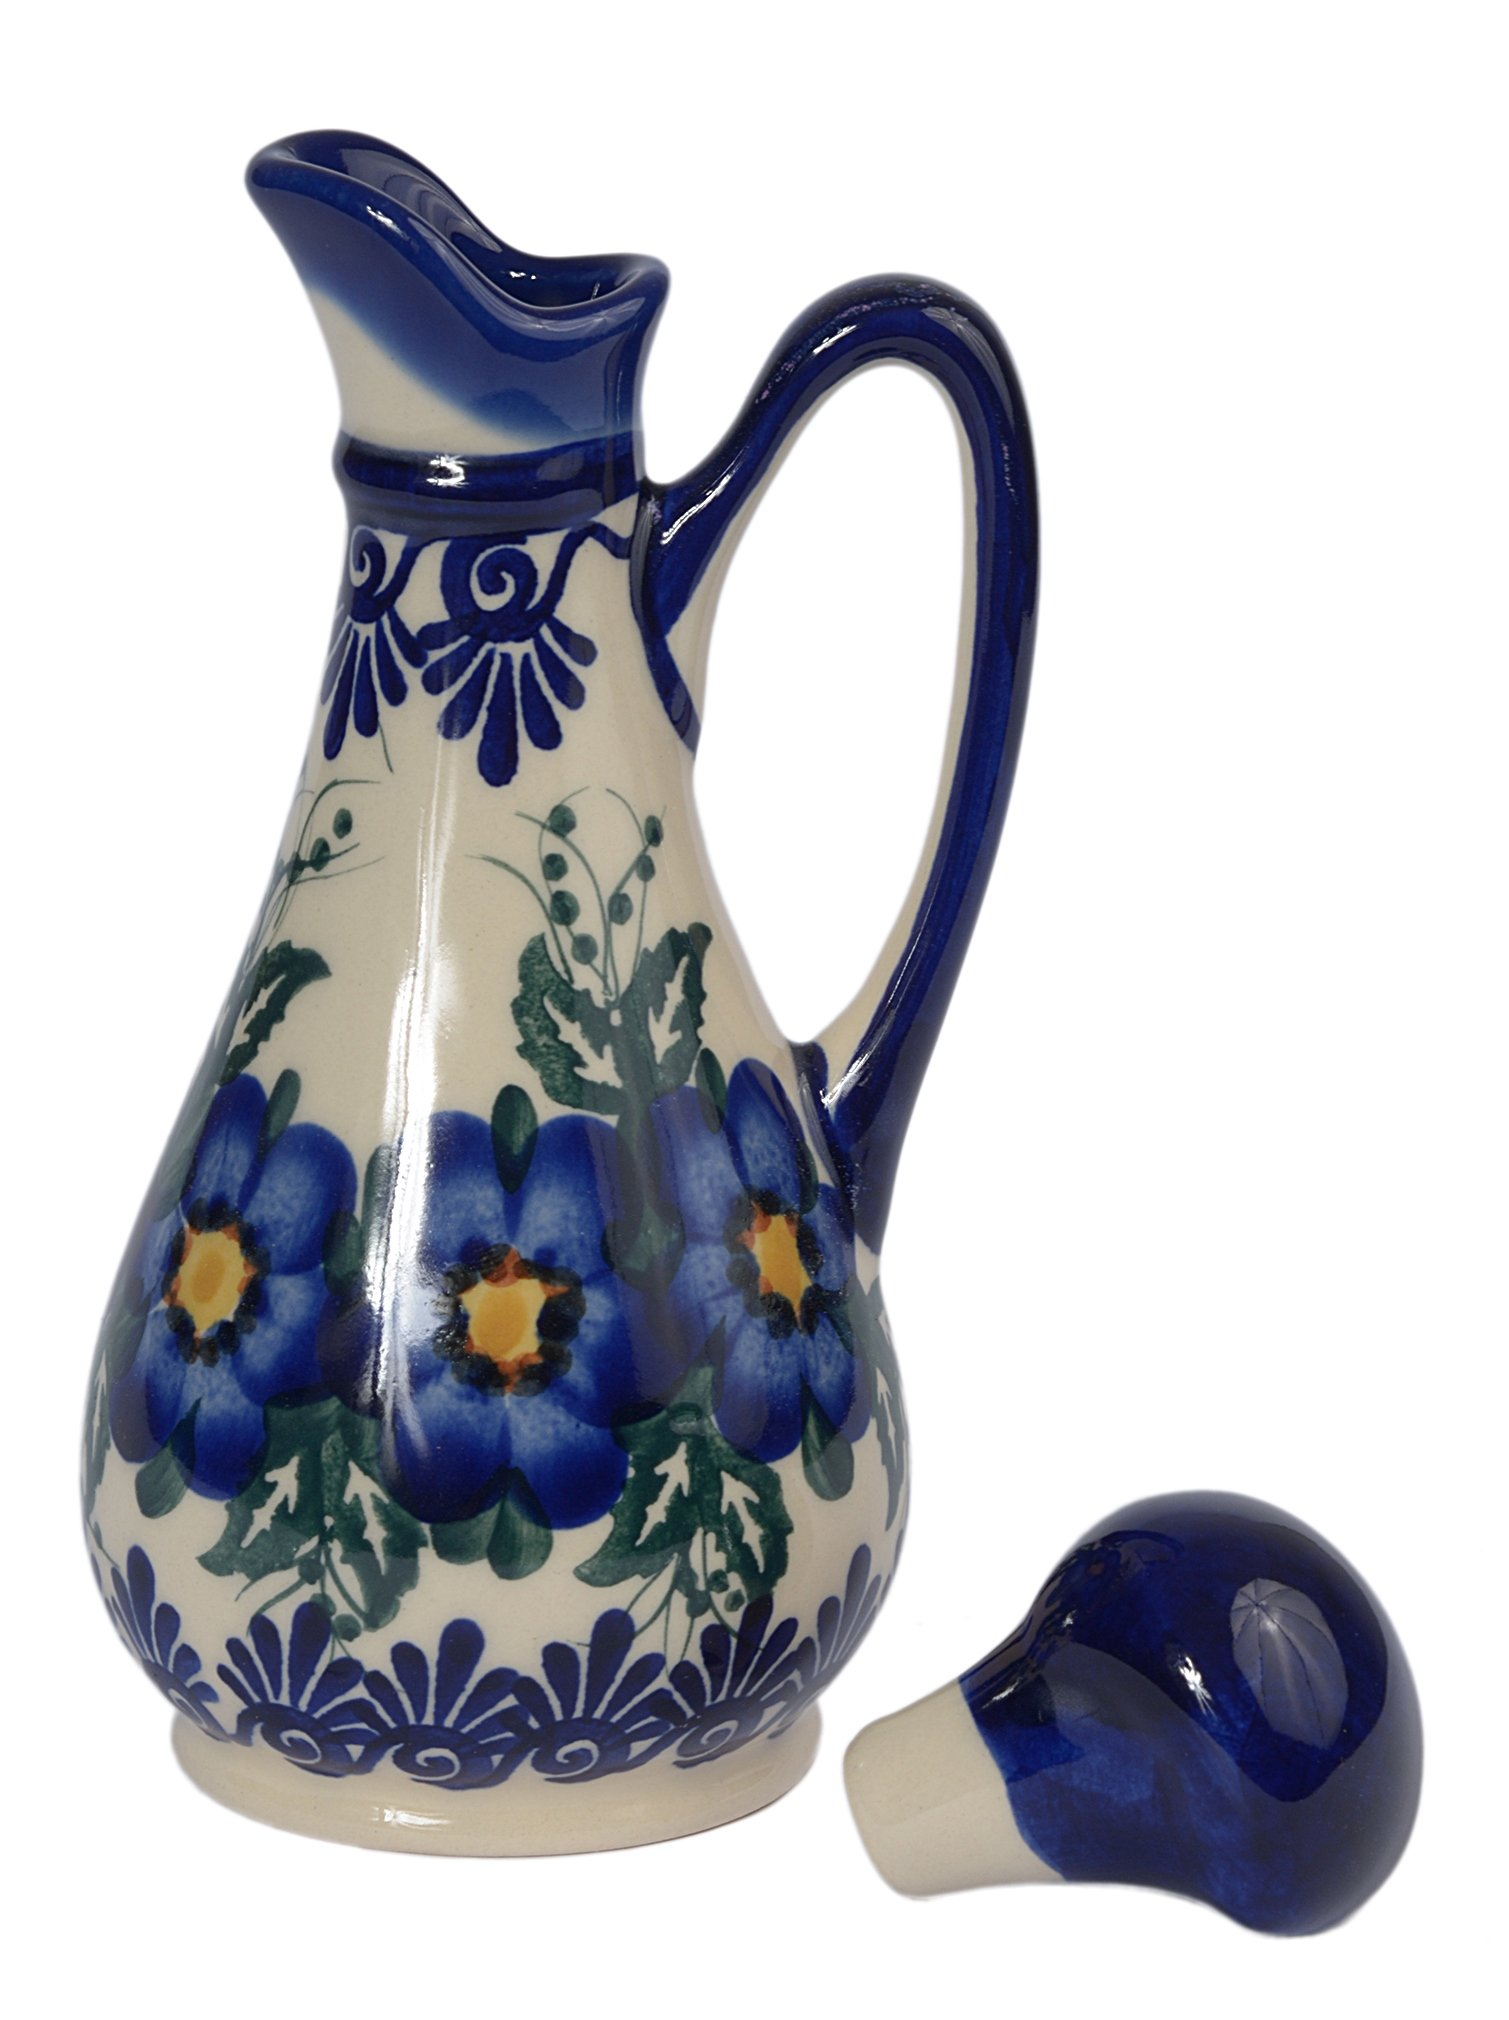 Traditional Polish Pottery, Handcrafted Ceramic Olive Oil or Vinegar Bottle 160ml, Boleslawiec Style Pattern, V.401.Pansy